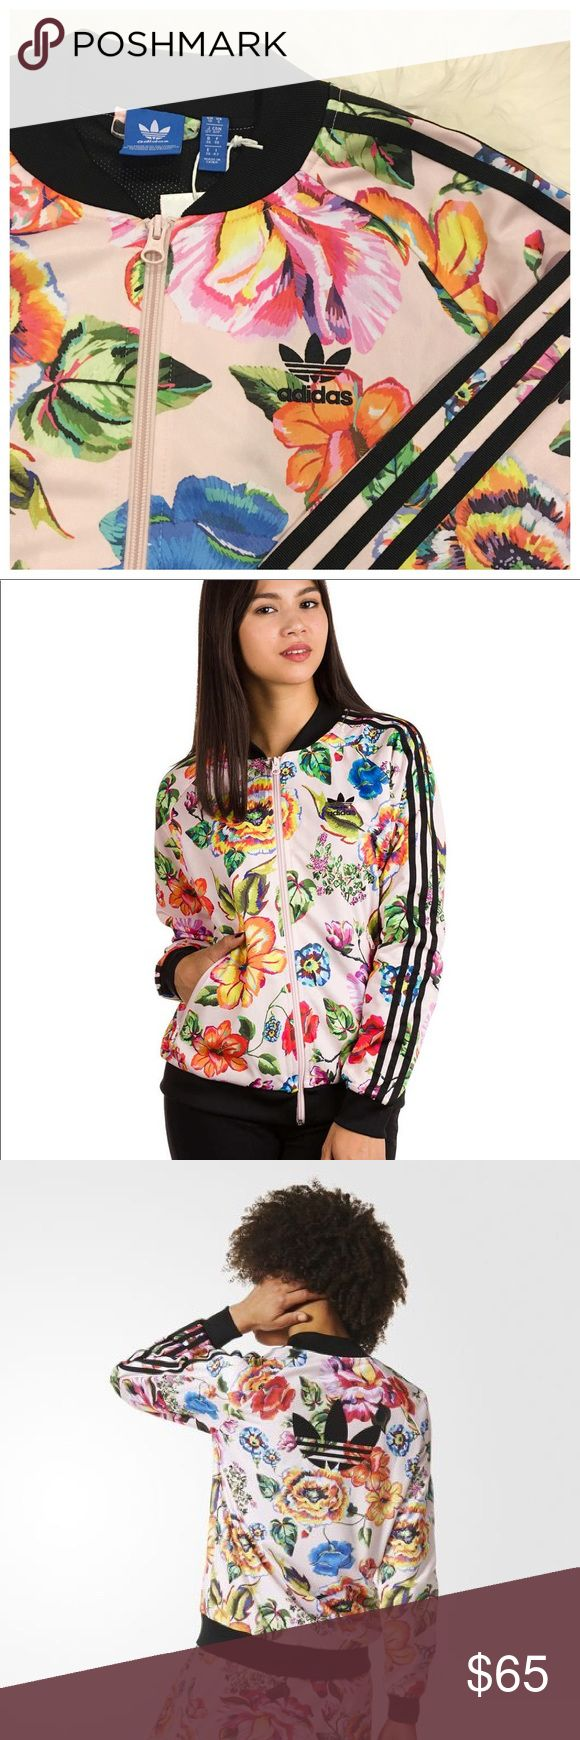 Adidas Floralita Track Jacket * Adidas sporty chic Floralita sst track jacket w/ pastel tropical flair, trefoil logo in front chest corner and in back. Feministic print inspired by Brazil's flora for a fresh vibrant look. Collab w/ Brazil's The FARM Company. Mesh lined zip up jacket w/ shiny tricot material. Zipper pockets. Raglan sleeves, baseball collar, regular fit. * Perfect bomber for any outfit. * Size: Small (Laid flat armpit to armpit: 19 in, length: 25 in.  * Feel free to ask any…